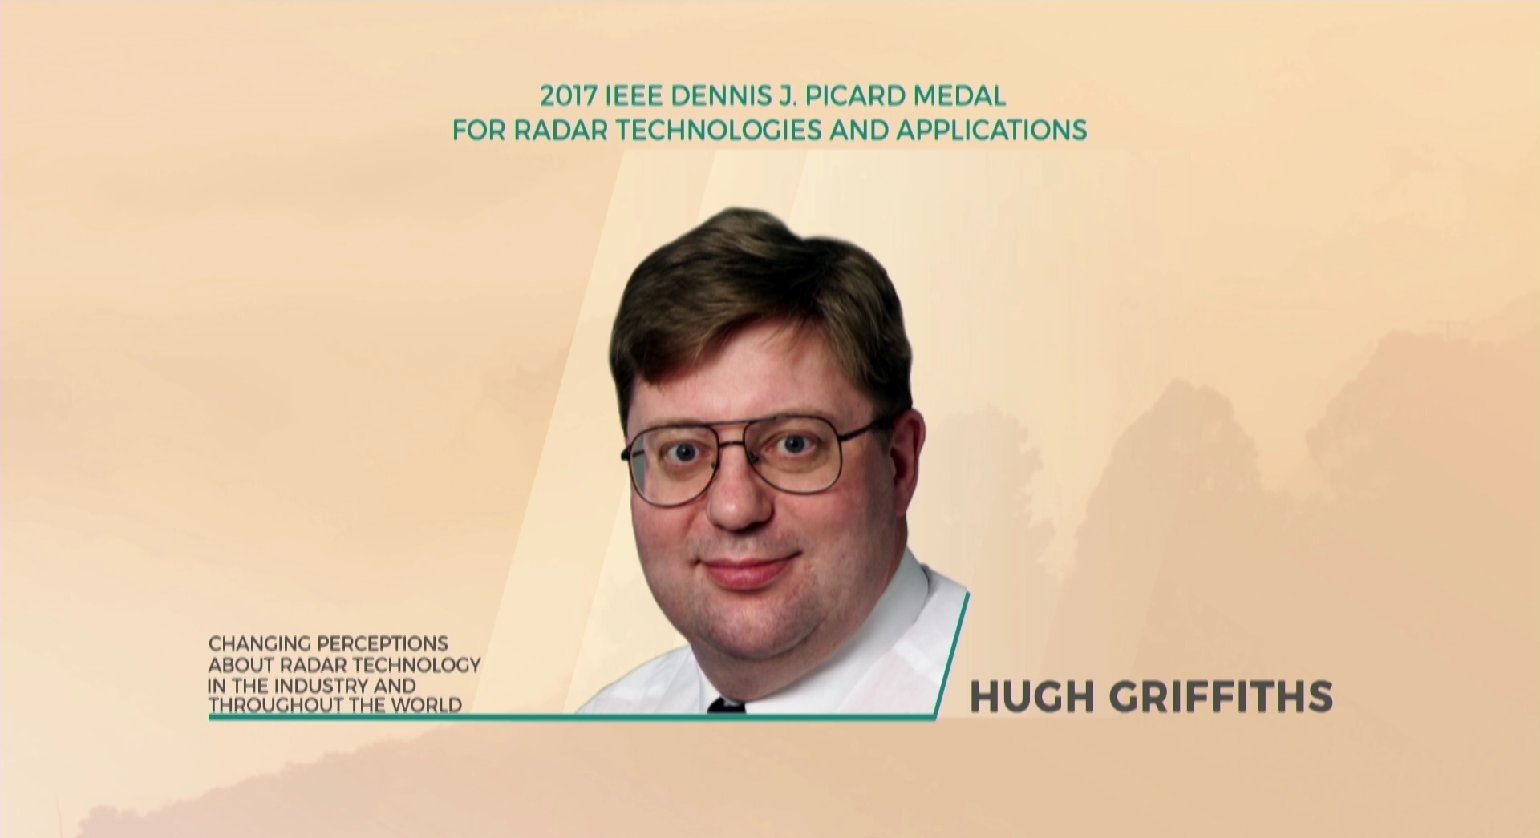 Hugh Griffiths accepts the IEEE Dennis J. Picard Medal for Radar Technologies and Applications - Honors Ceremony 2017